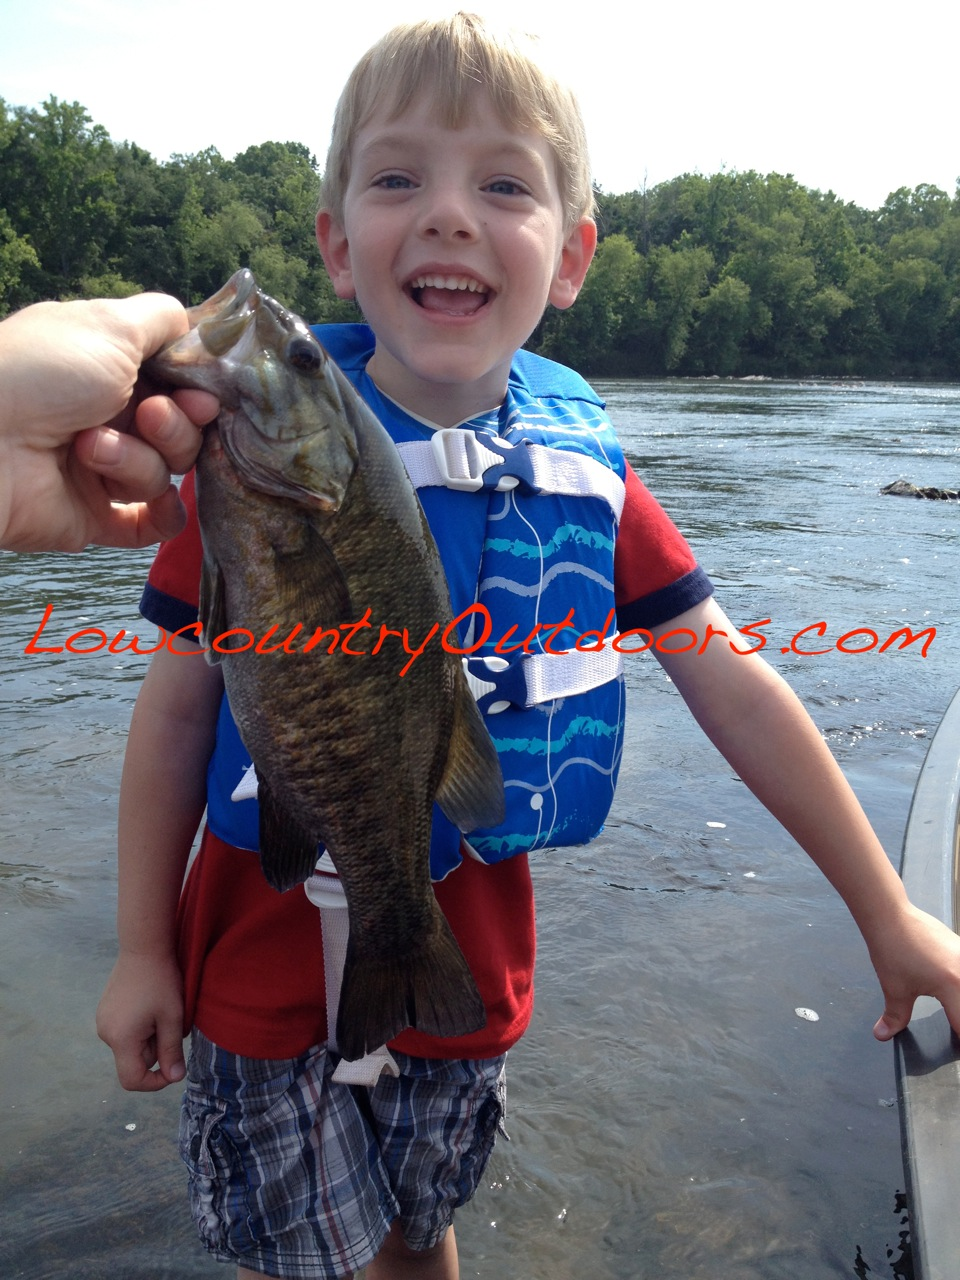 Lowcountry outdoors freshwater fishing tips for april may for Freshwater fishing tips